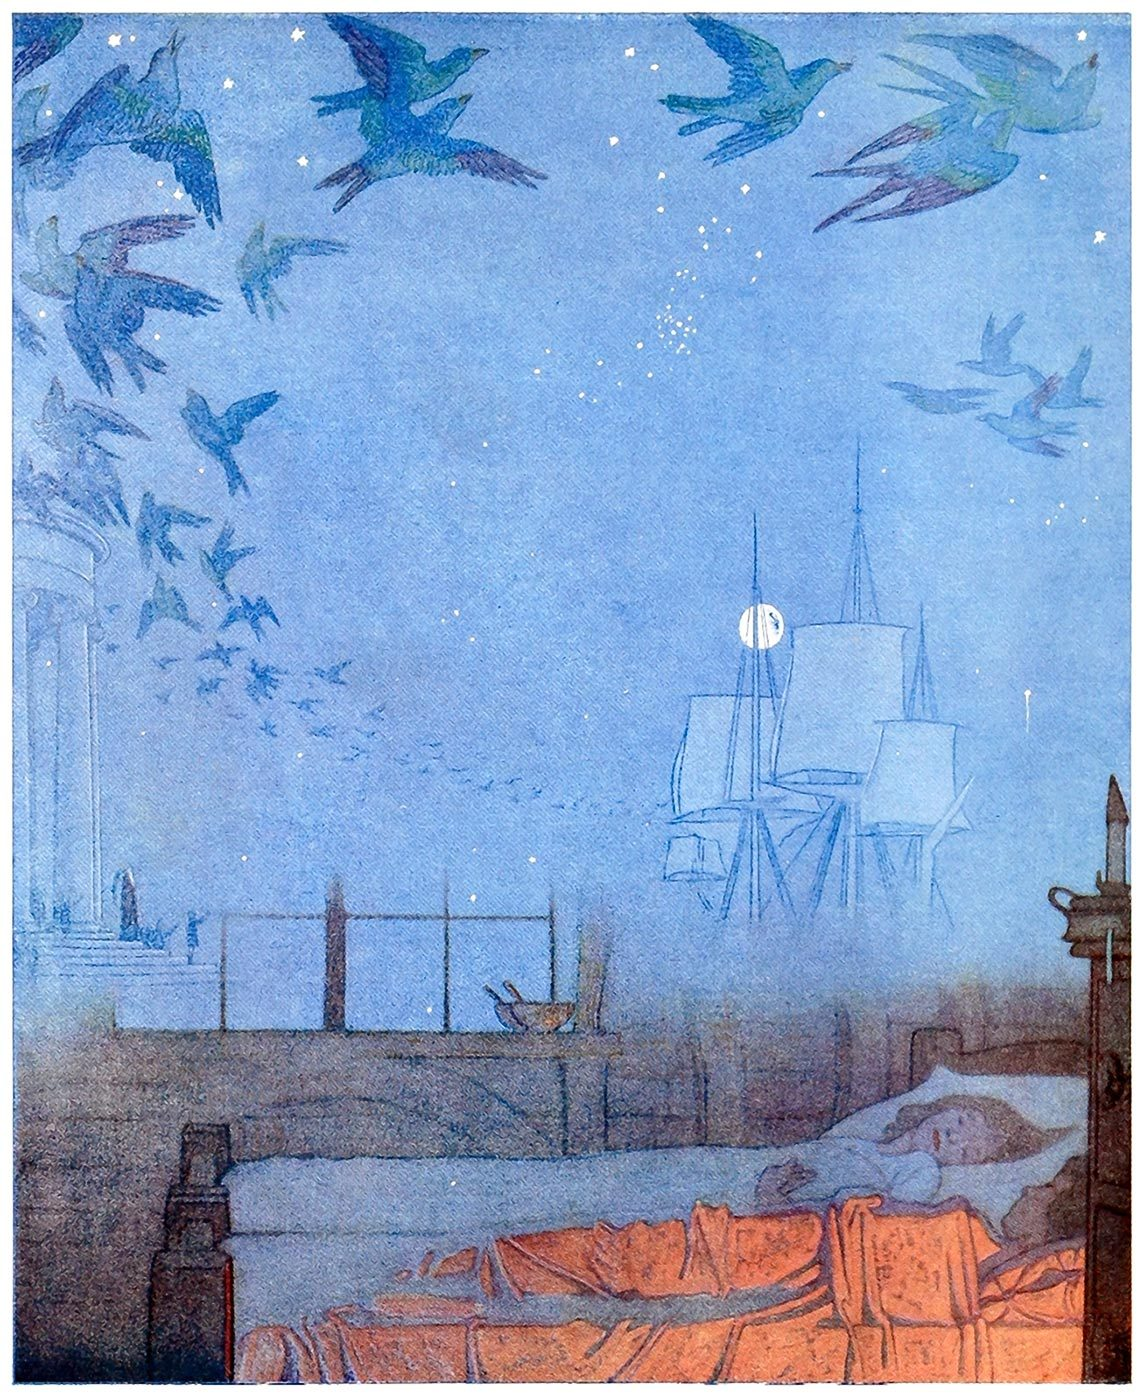 oldbookillustrations:  Frederick Cayley Robinson, frontispiece from The blue bird, by Maurice Maeterlinck, New York, 1920. (Source: archive.org)